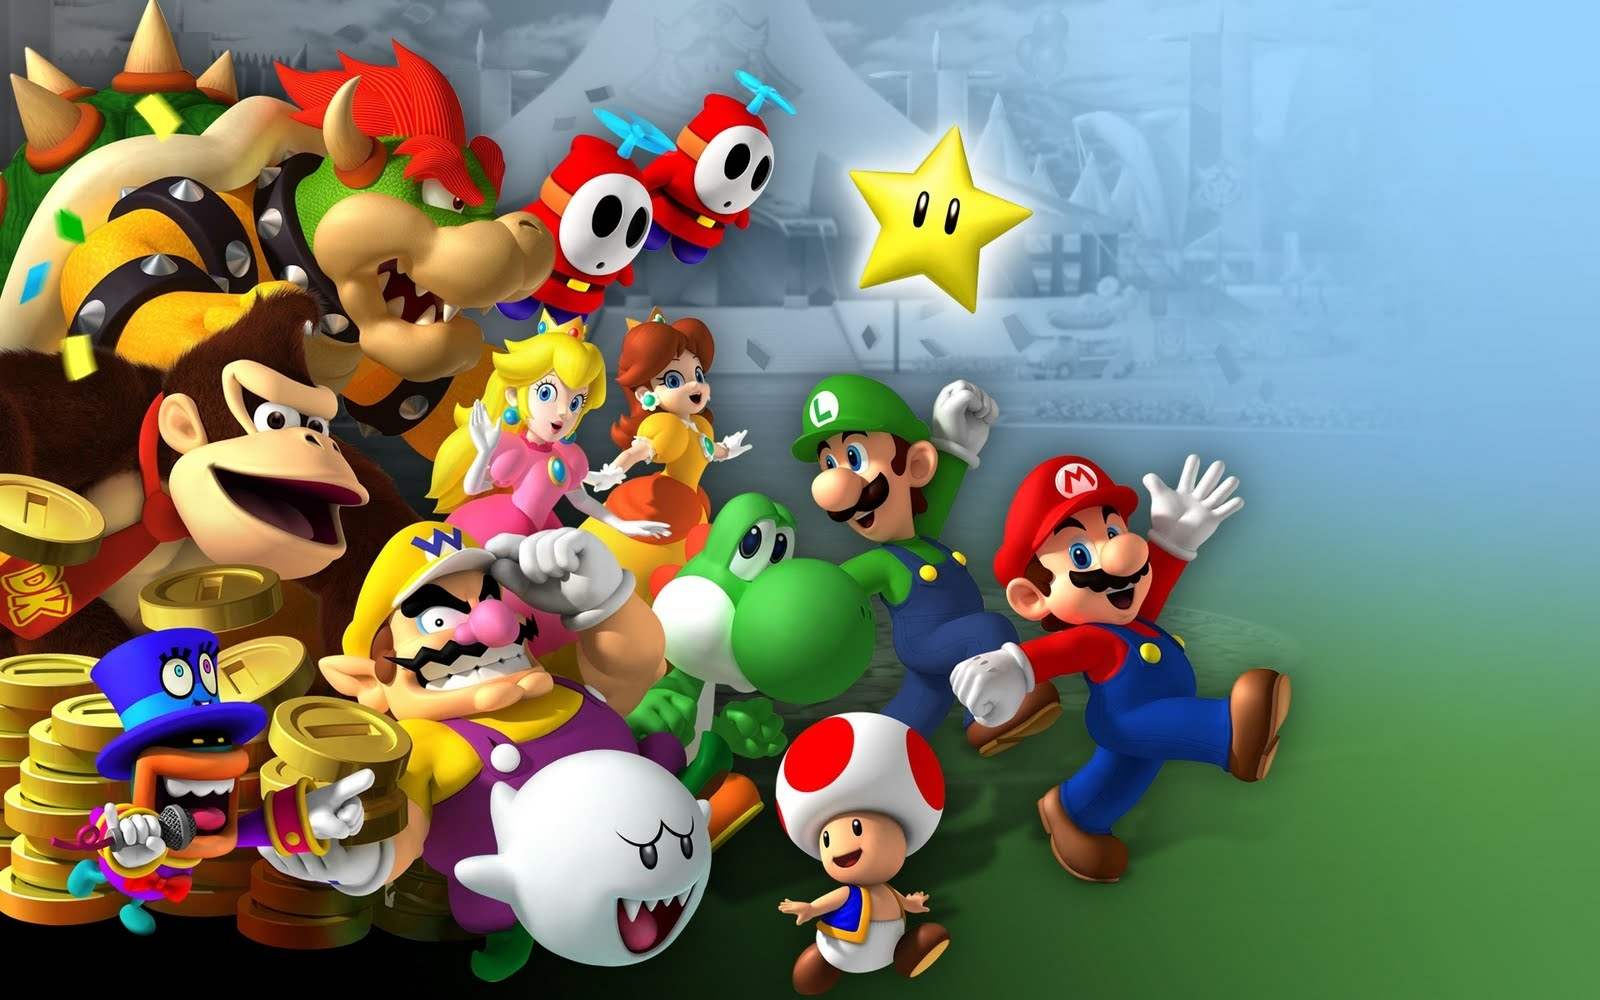 super mario wallpaper 5089 1600x1000 px ~ hdwallsource